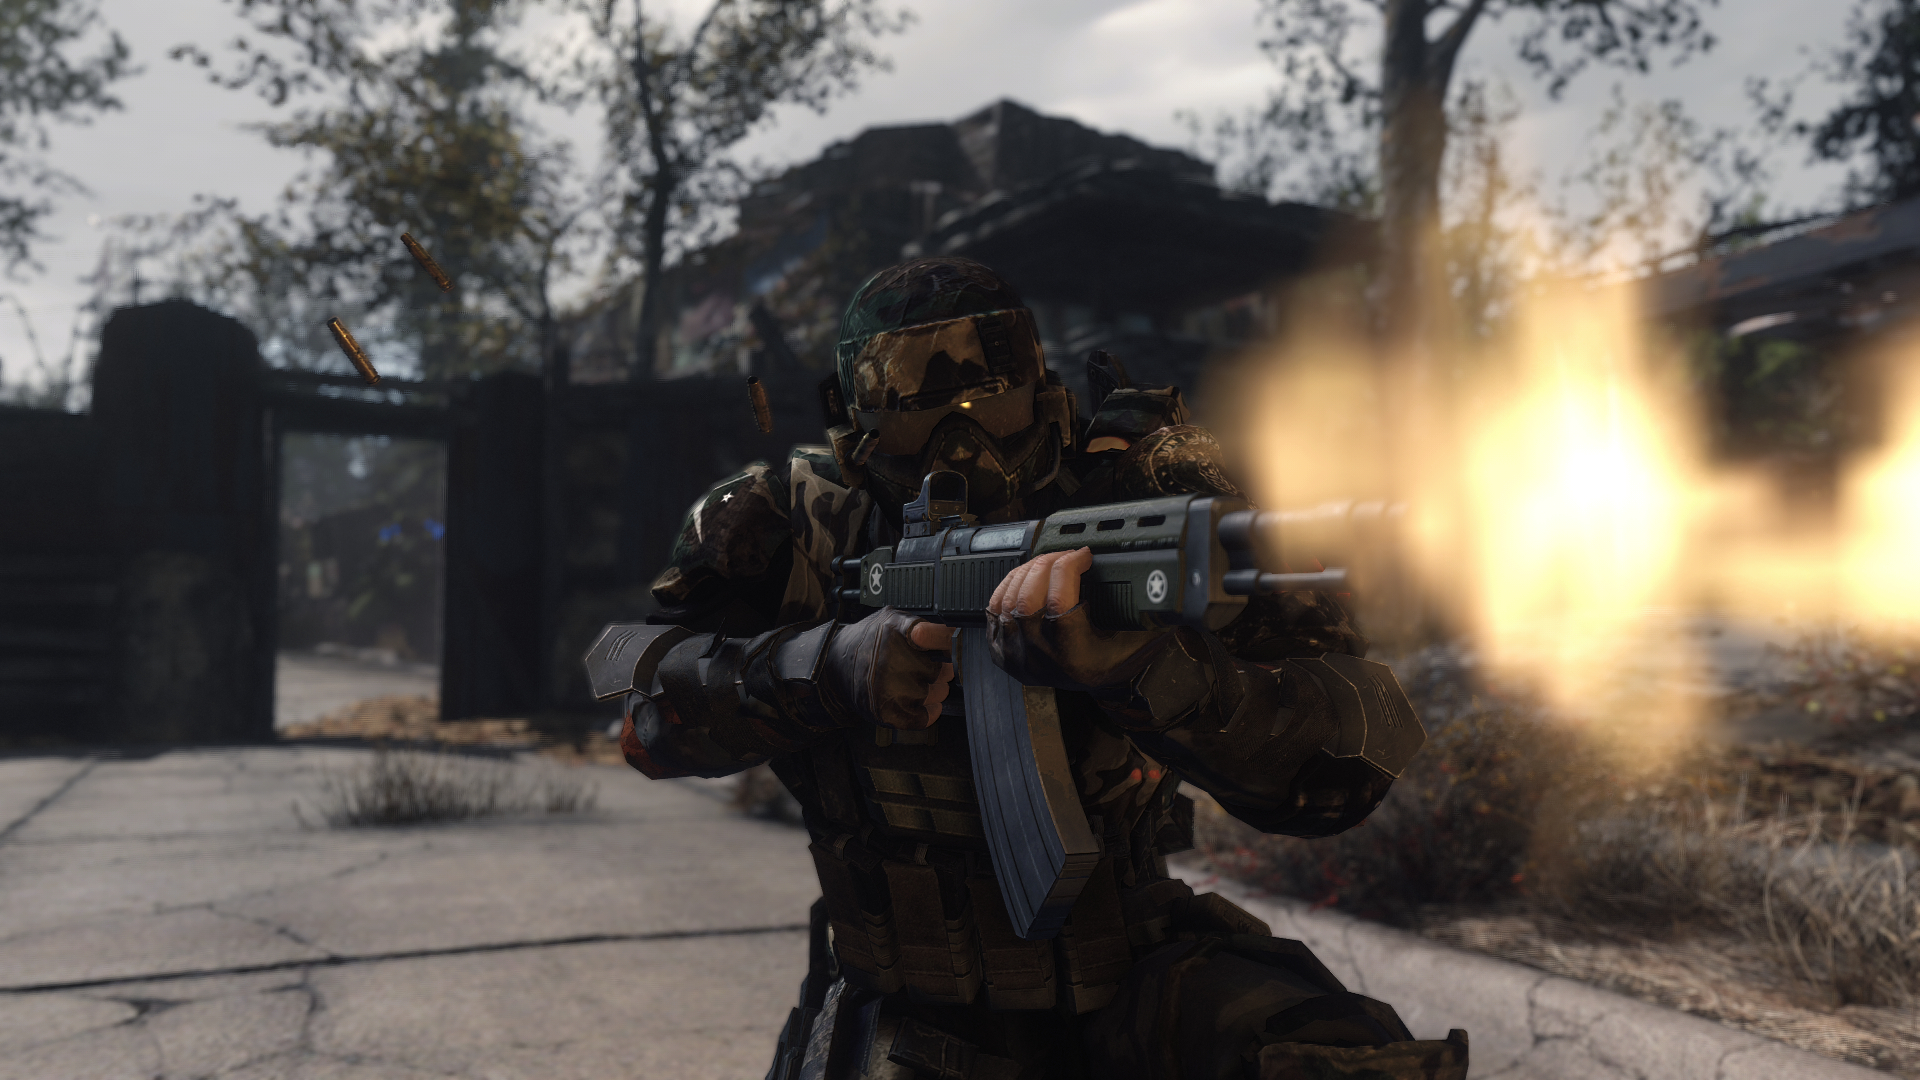 WIP Minuteman Commando Armor at Fallout 4 Nexus - Mods and